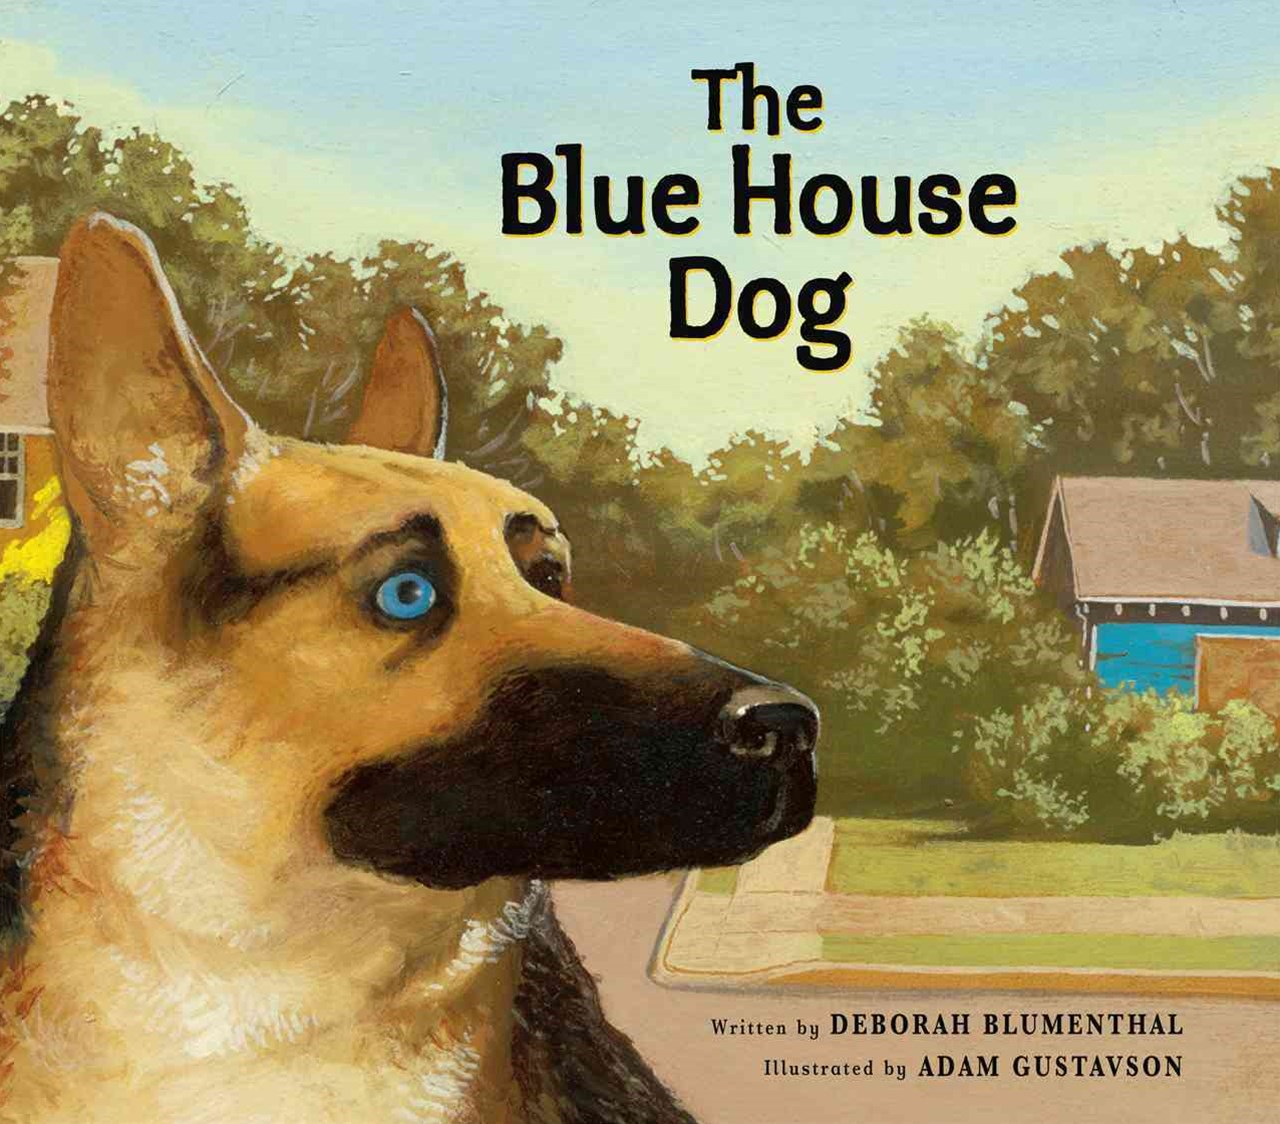 The Blue House Dog